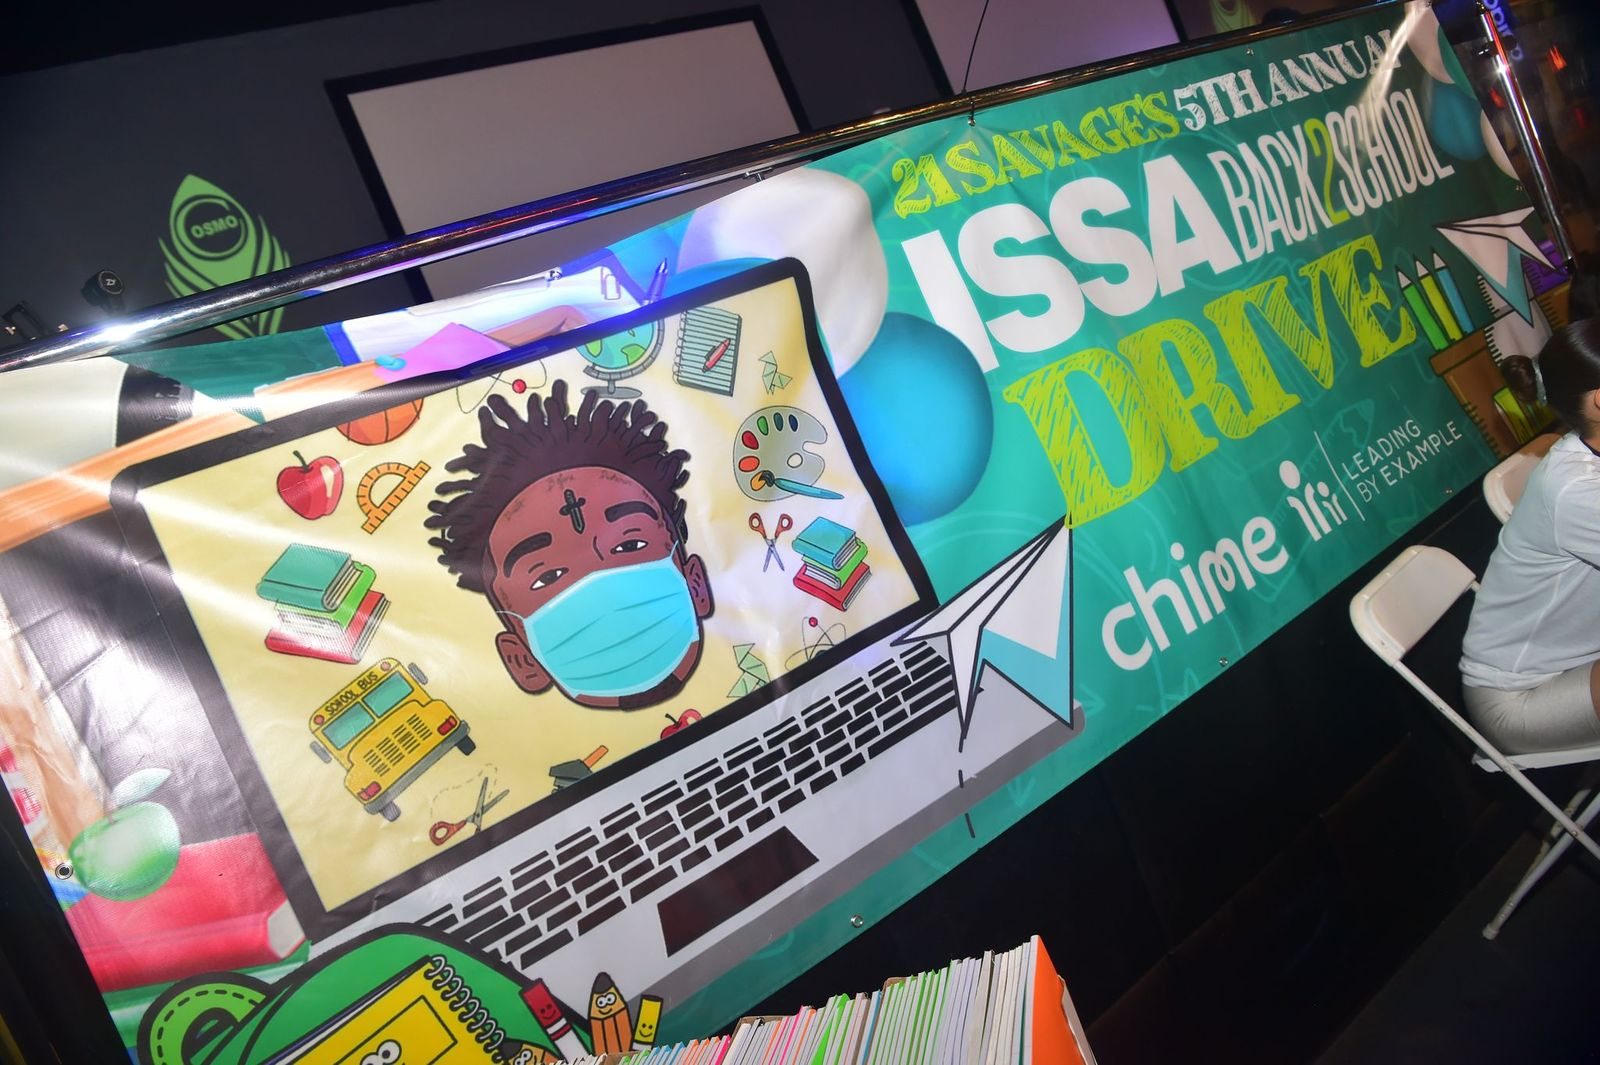 21 Savage Hosts COVID-19 Safe 5th Annual Issa Back to School Drive